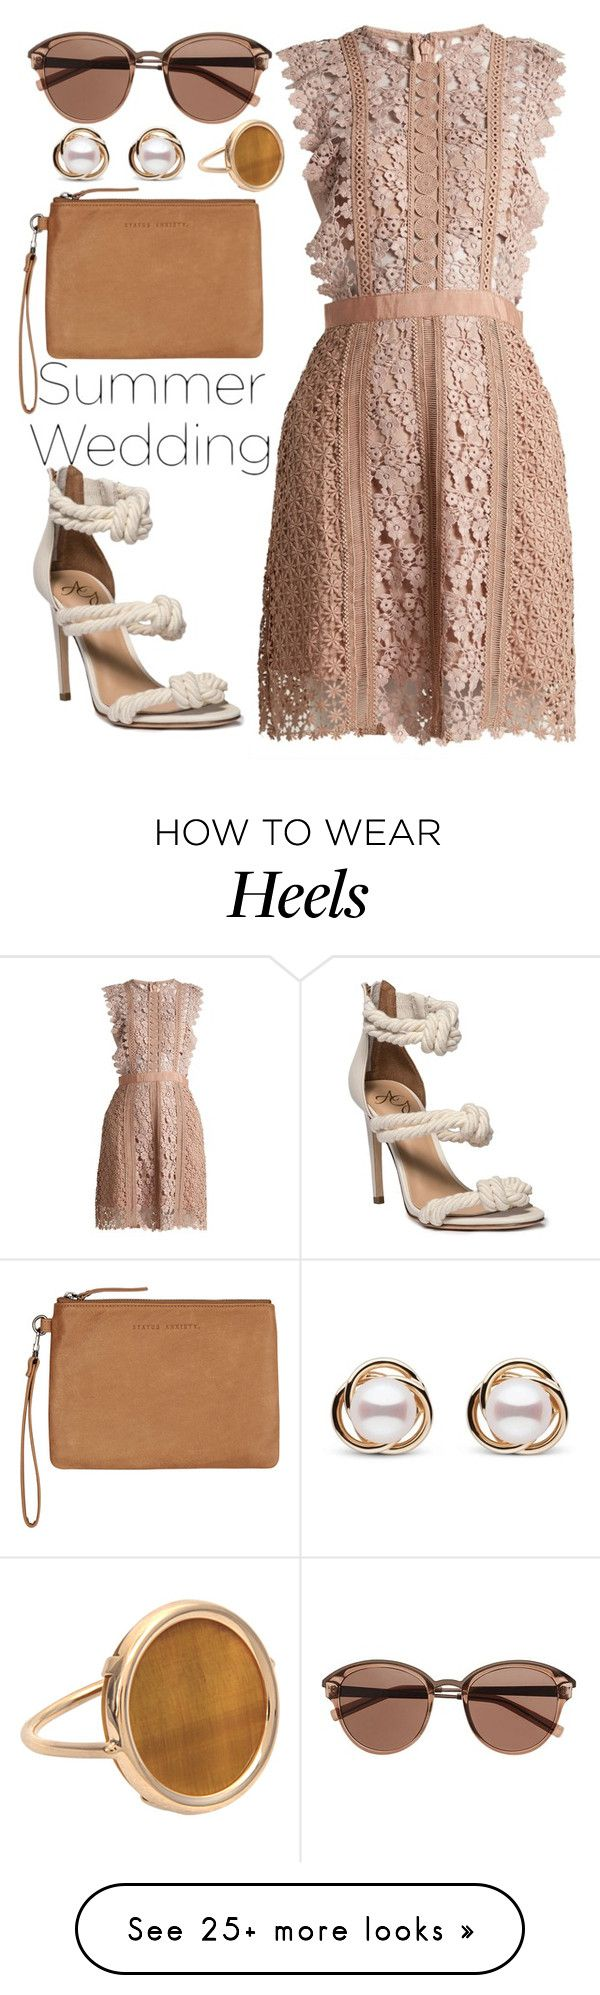 """Say I Do: Summer Weddings"" by joslynaurora on Polyvore featuring self-portrait, Status Anxiety, Witchery, Trilogy, Ginette NY and summerwedding"